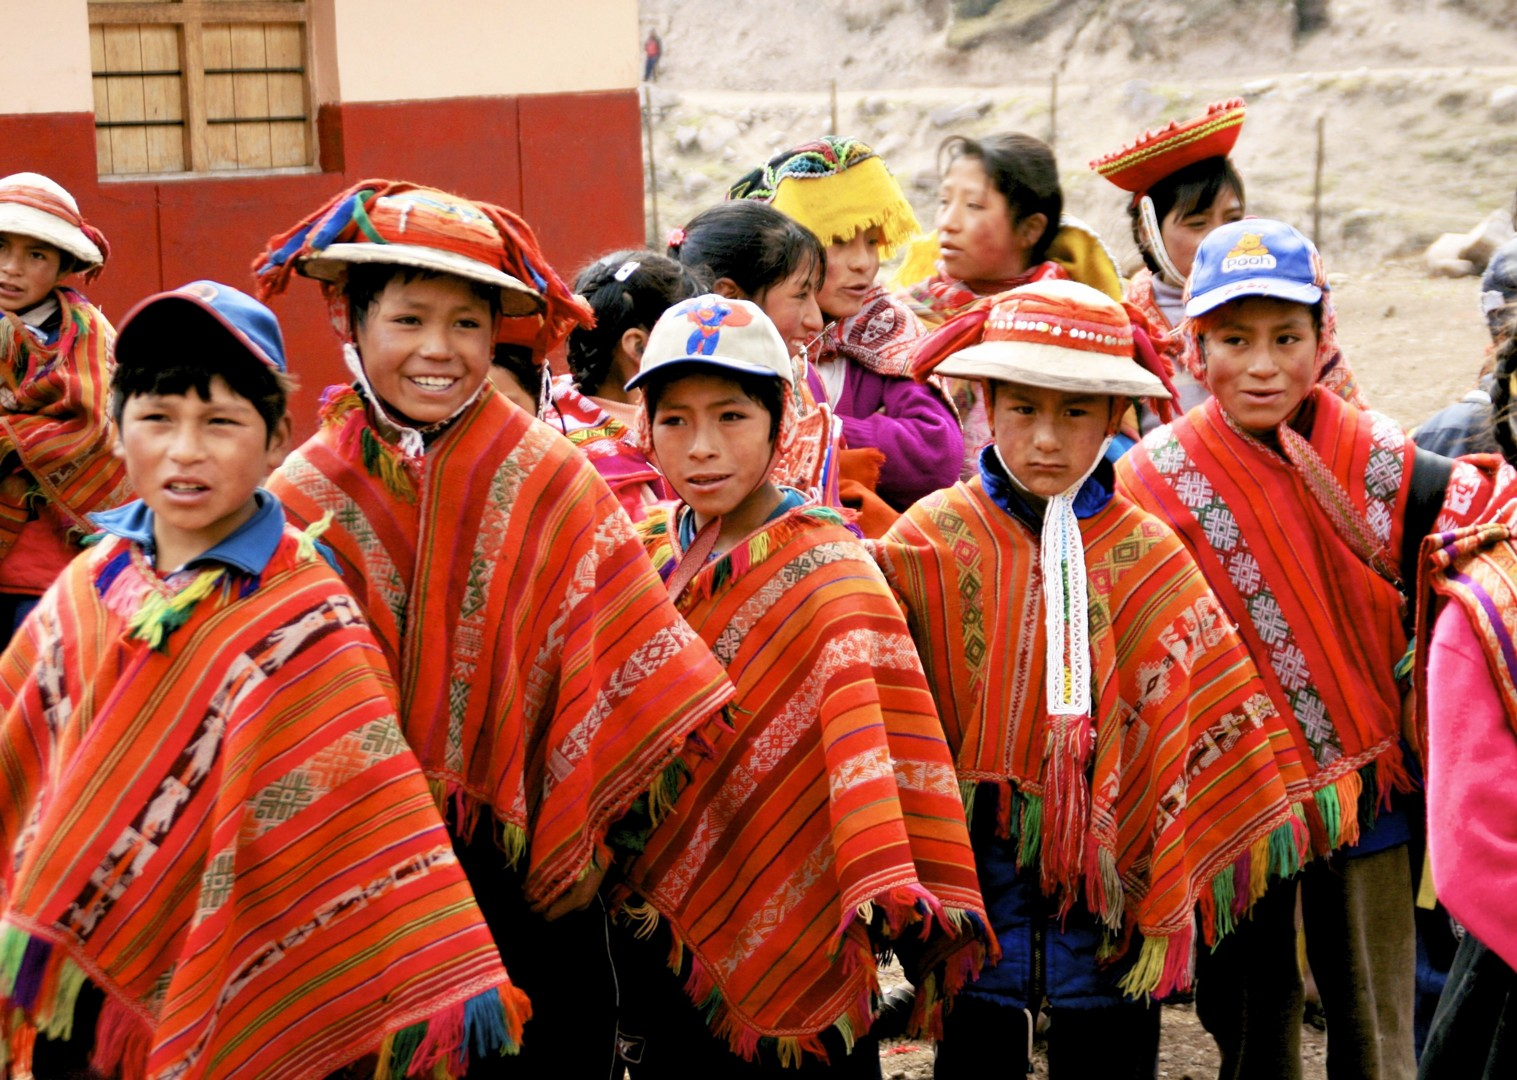 incan-ruins-andean-adventurer-peru-guided-family-cycling-holiday.jpg - Peru - Andean Adventure - Guided Family Cycling Holiday - Family Cycling